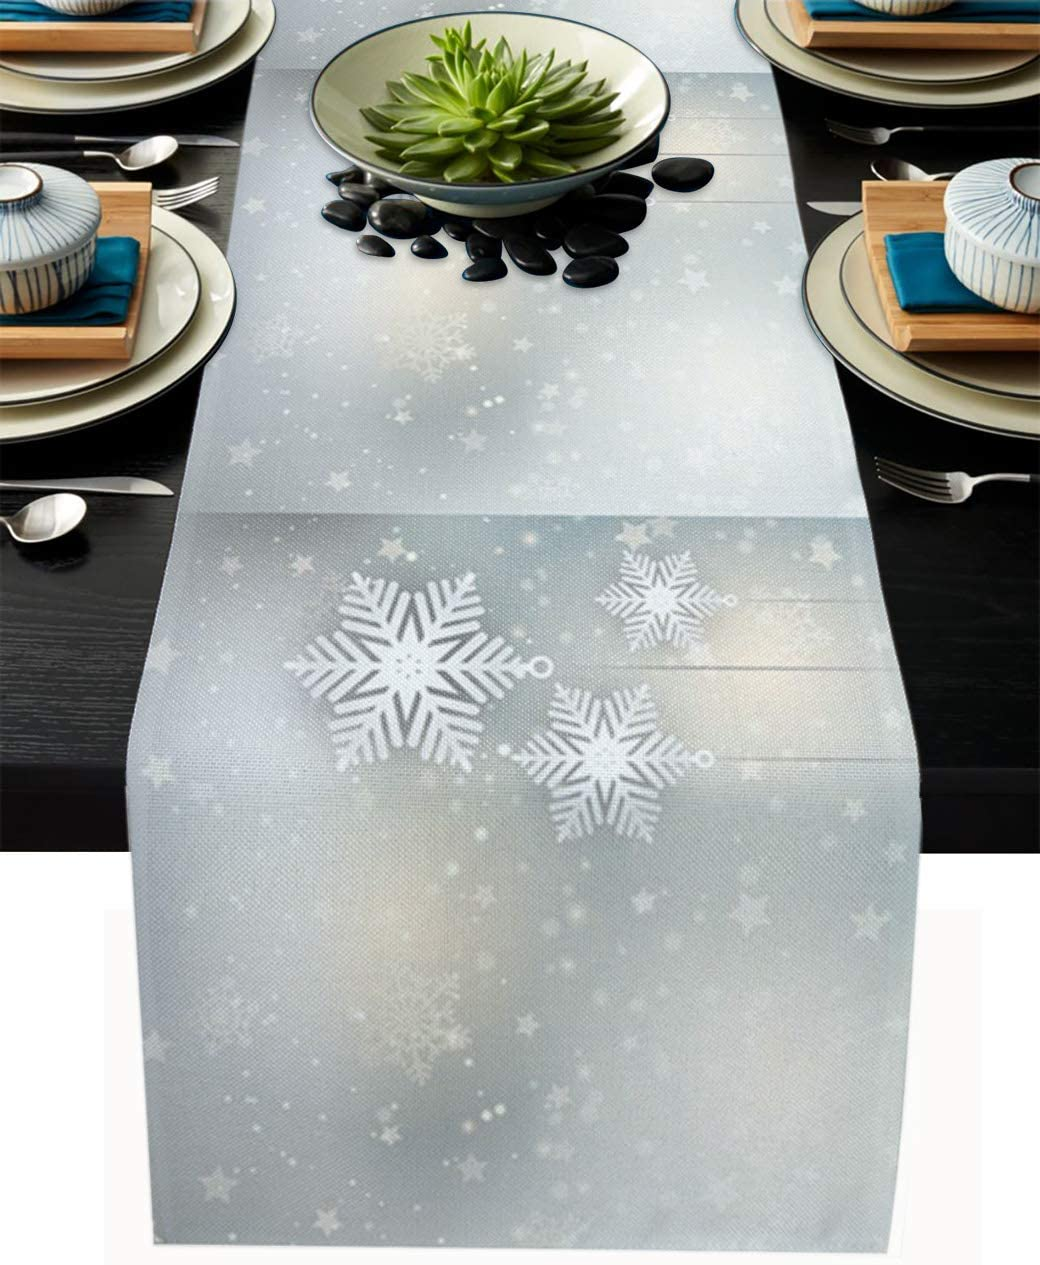 Libaoge Table Runner Washable Heat-Insulating Christmas Snowflake Star White Snow Winter Theme for Kitchen Dining Table Coffee Table Outdoor Party Decor 13x90in(33x229cm)